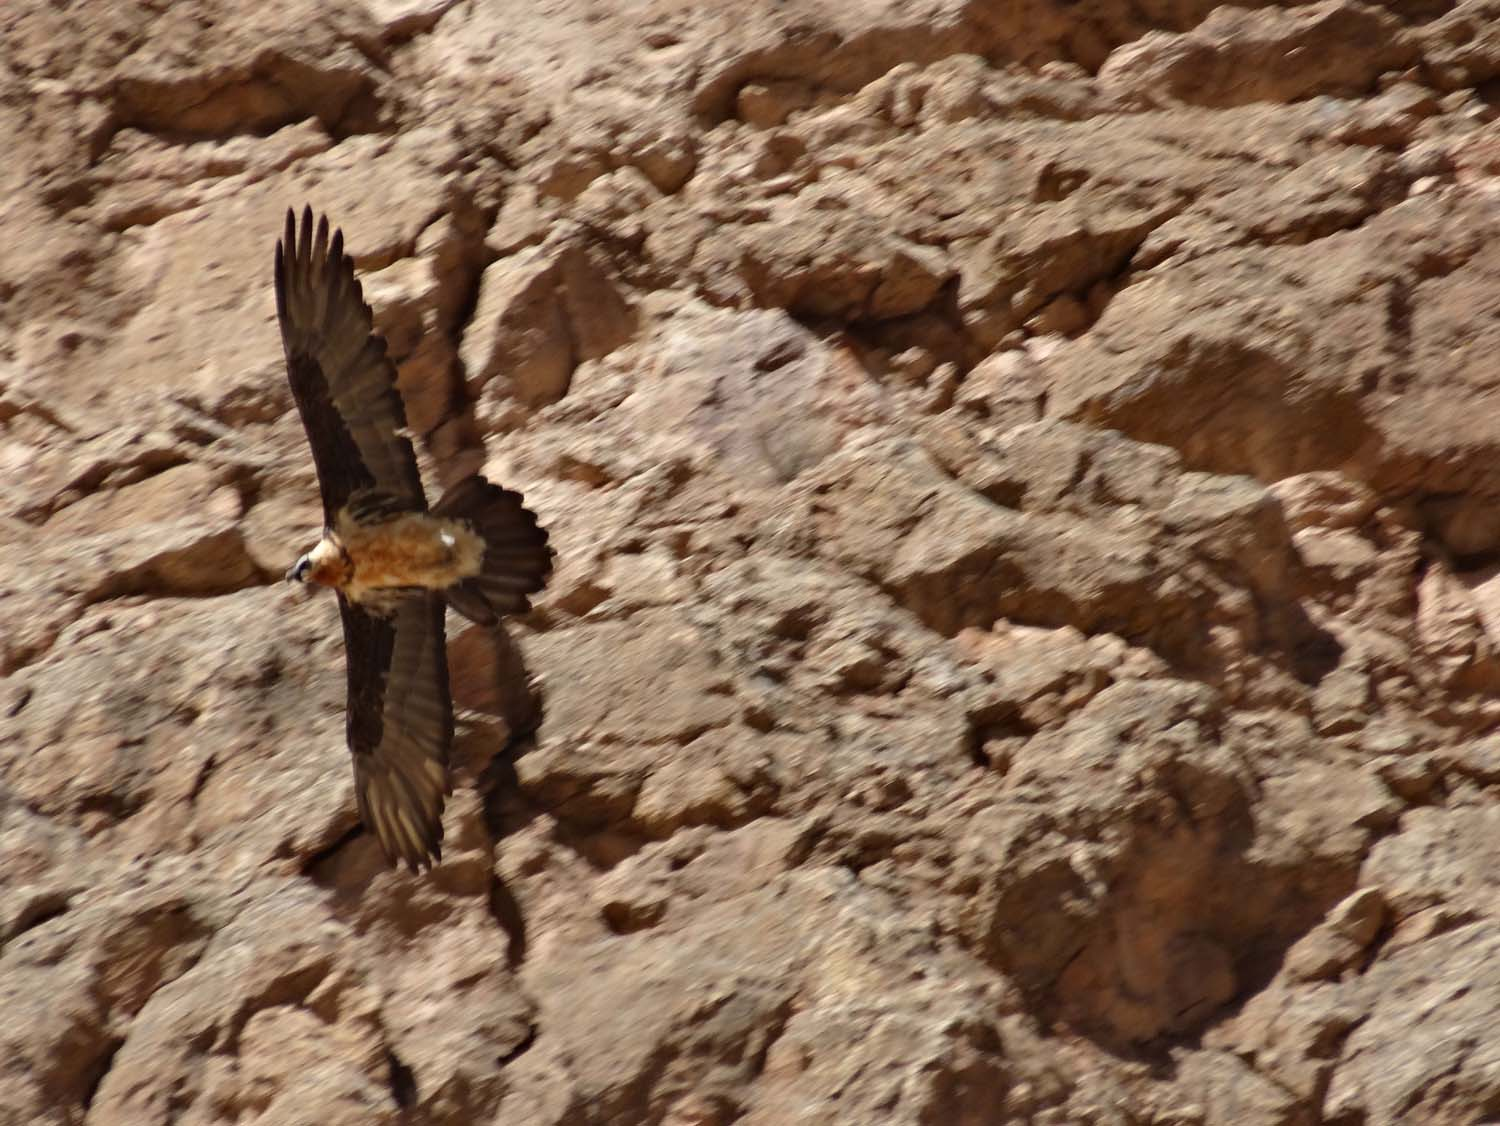 huge bird of prey circling the rocks